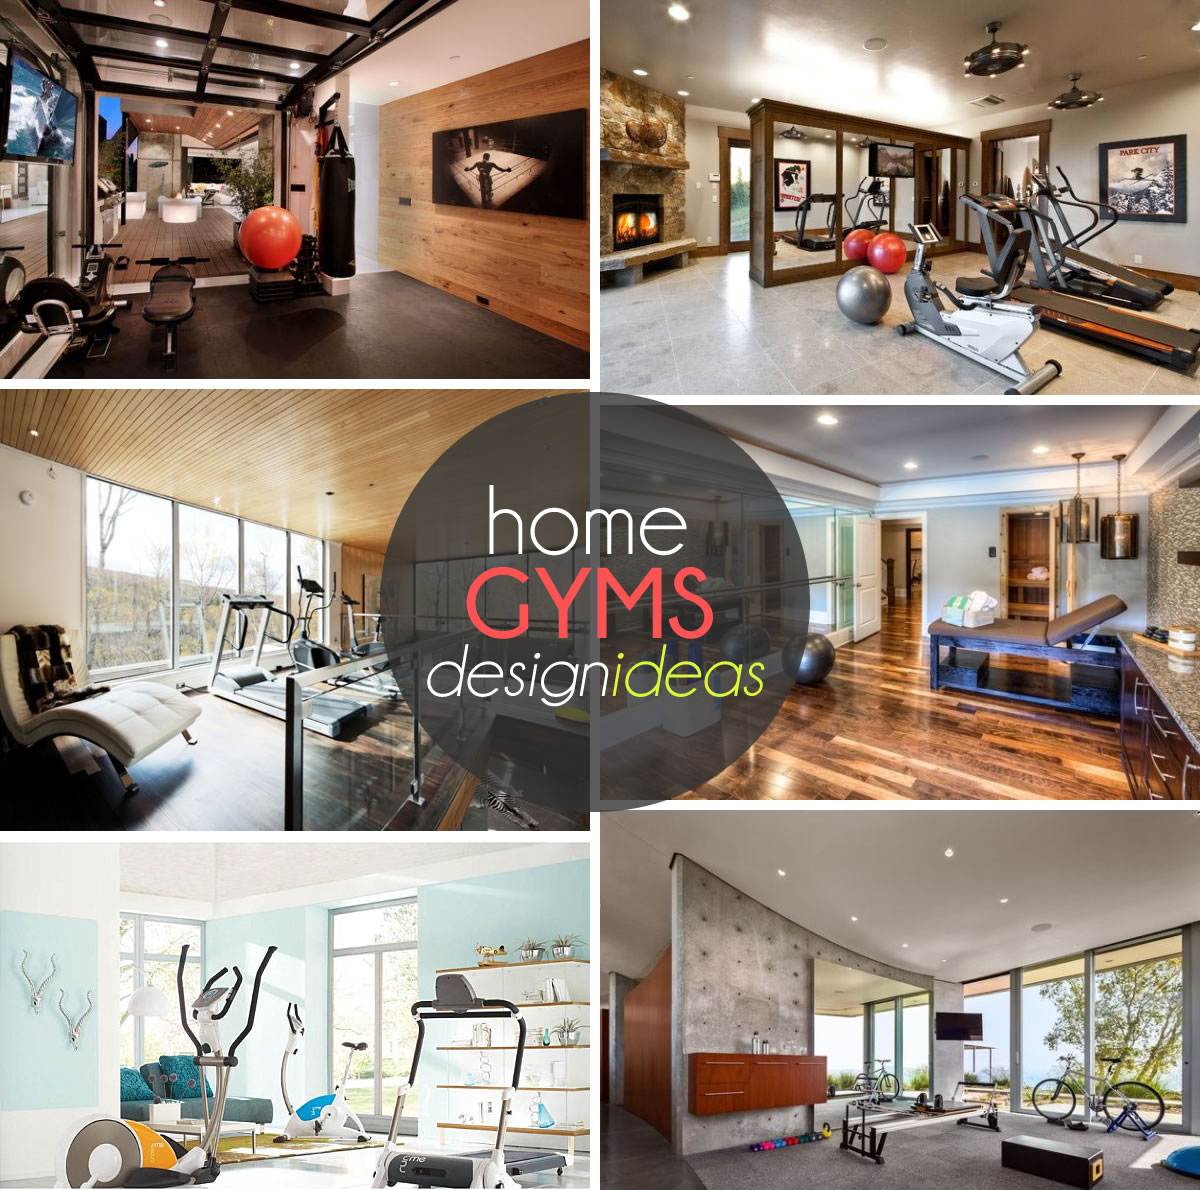 Basement Workout Area: 70+ Home Gym Ideas And Gym Rooms To Empower Your Workouts